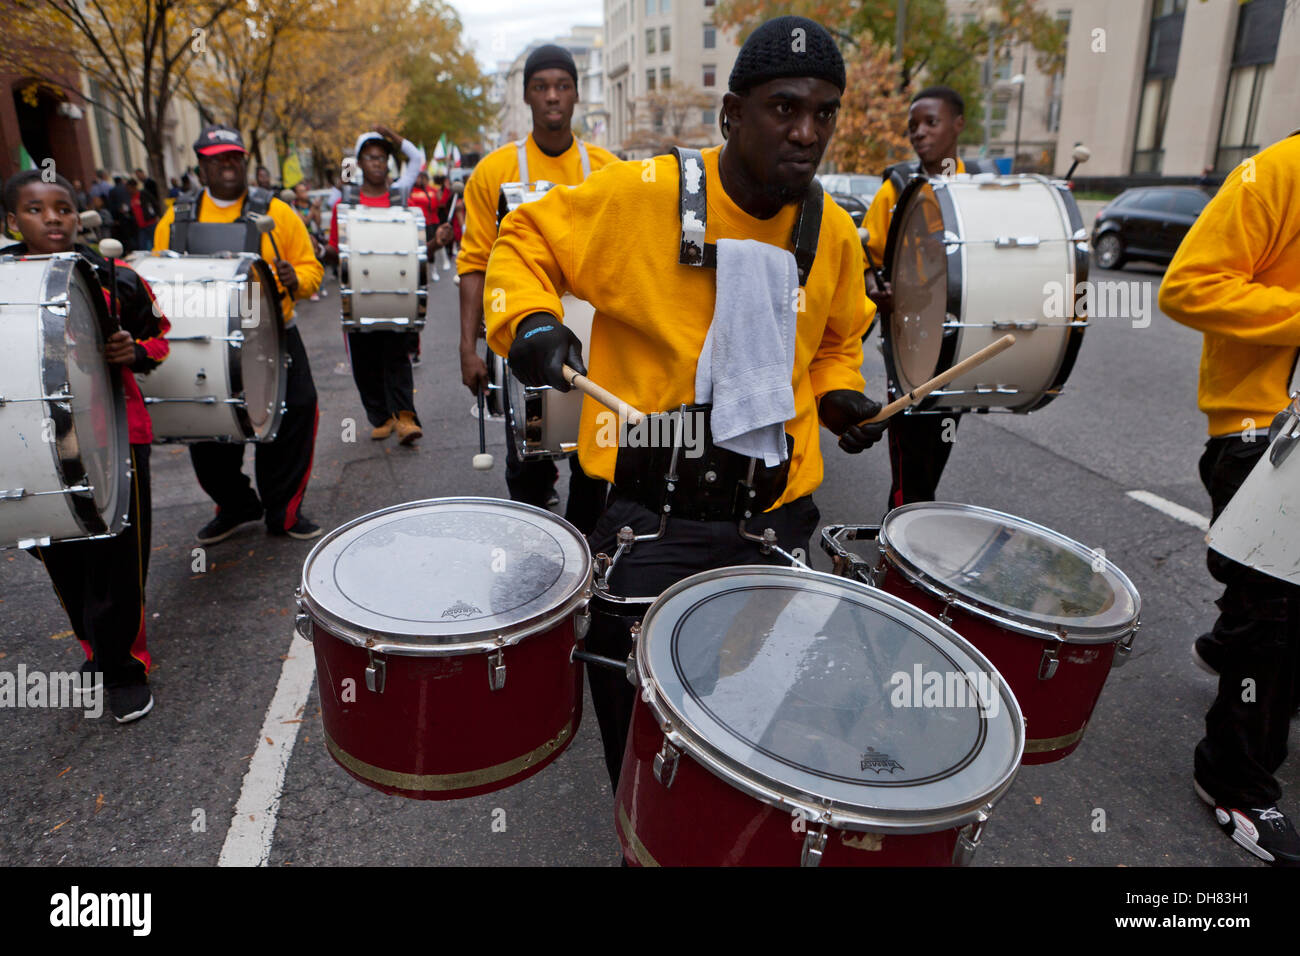 snare drum marching band stock photos snare drum marching band rh alamy com